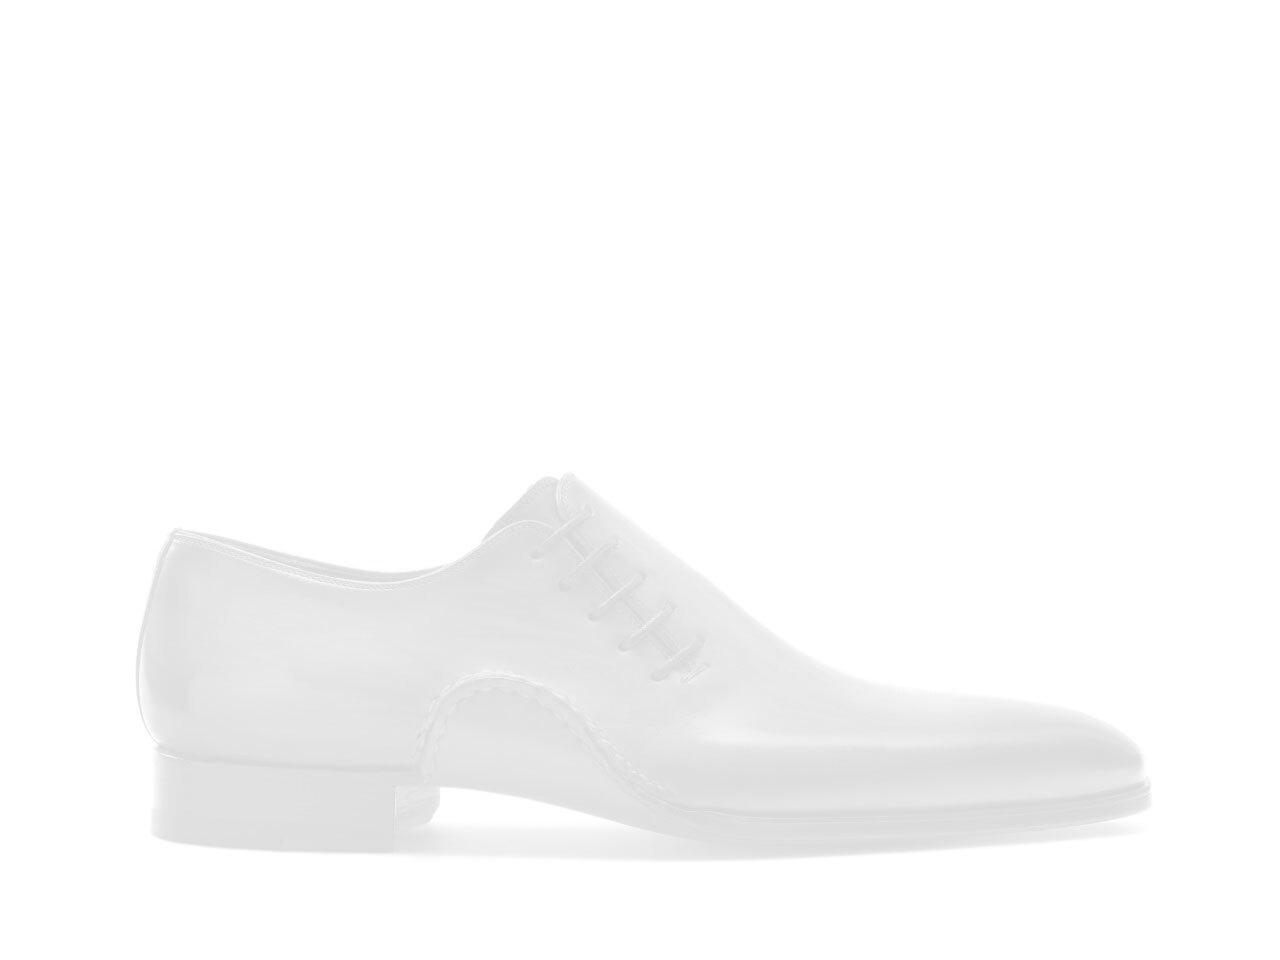 Sole of the Magnanni Como White and Navy Men's Sneakers